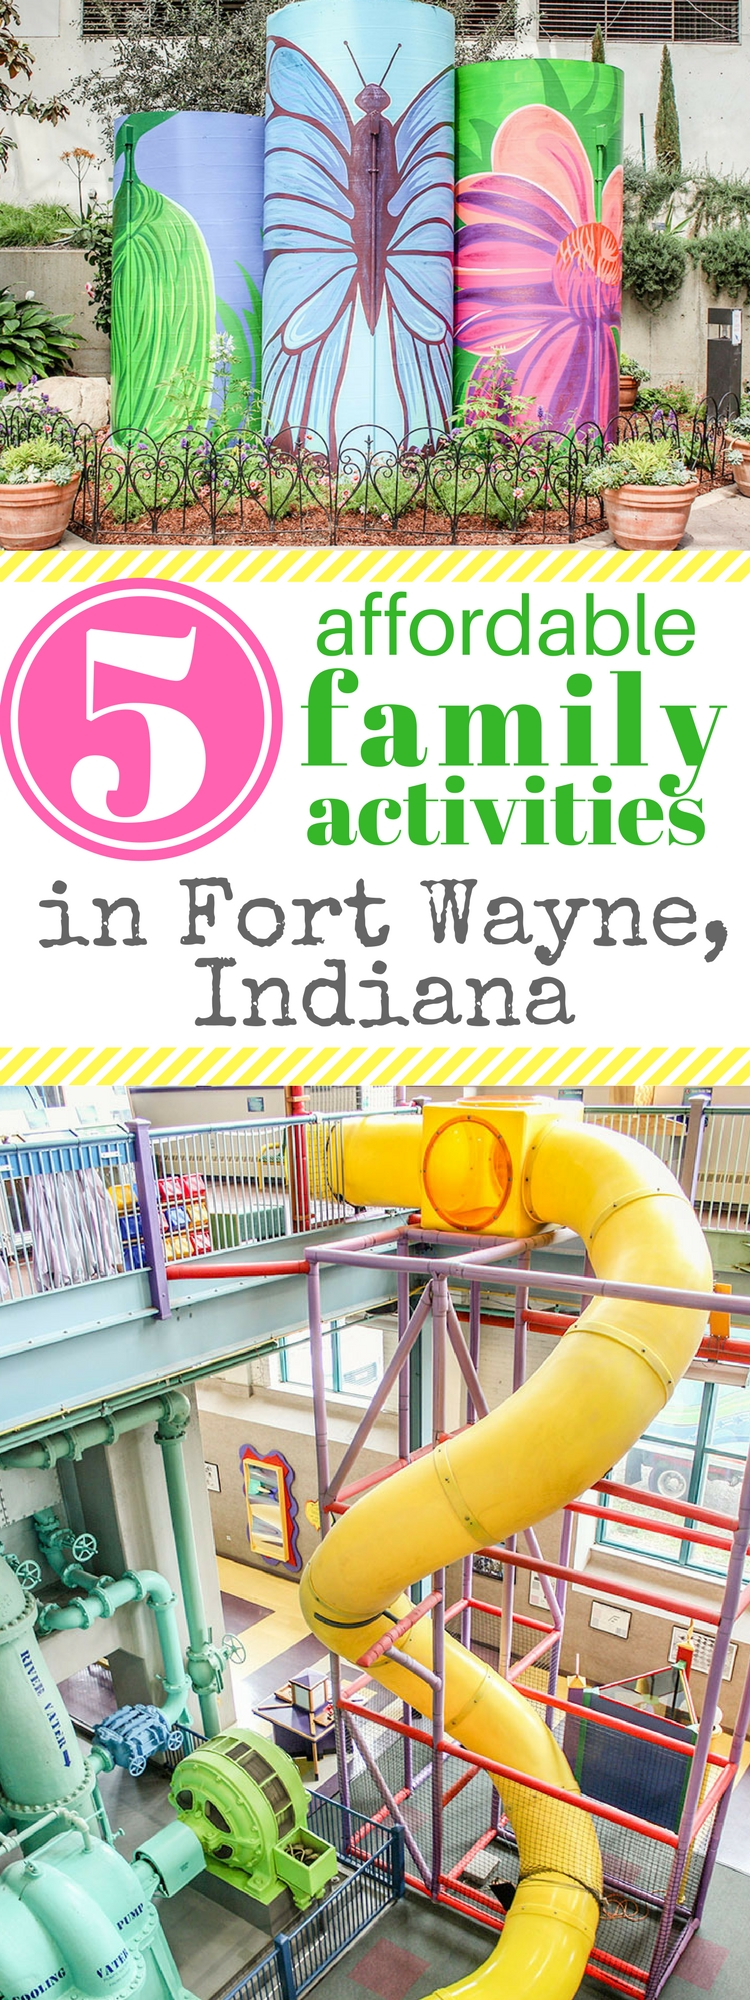 Looking for affordable family fun in Fort Wayne. We found 5 amazing family activities that we want to do again!